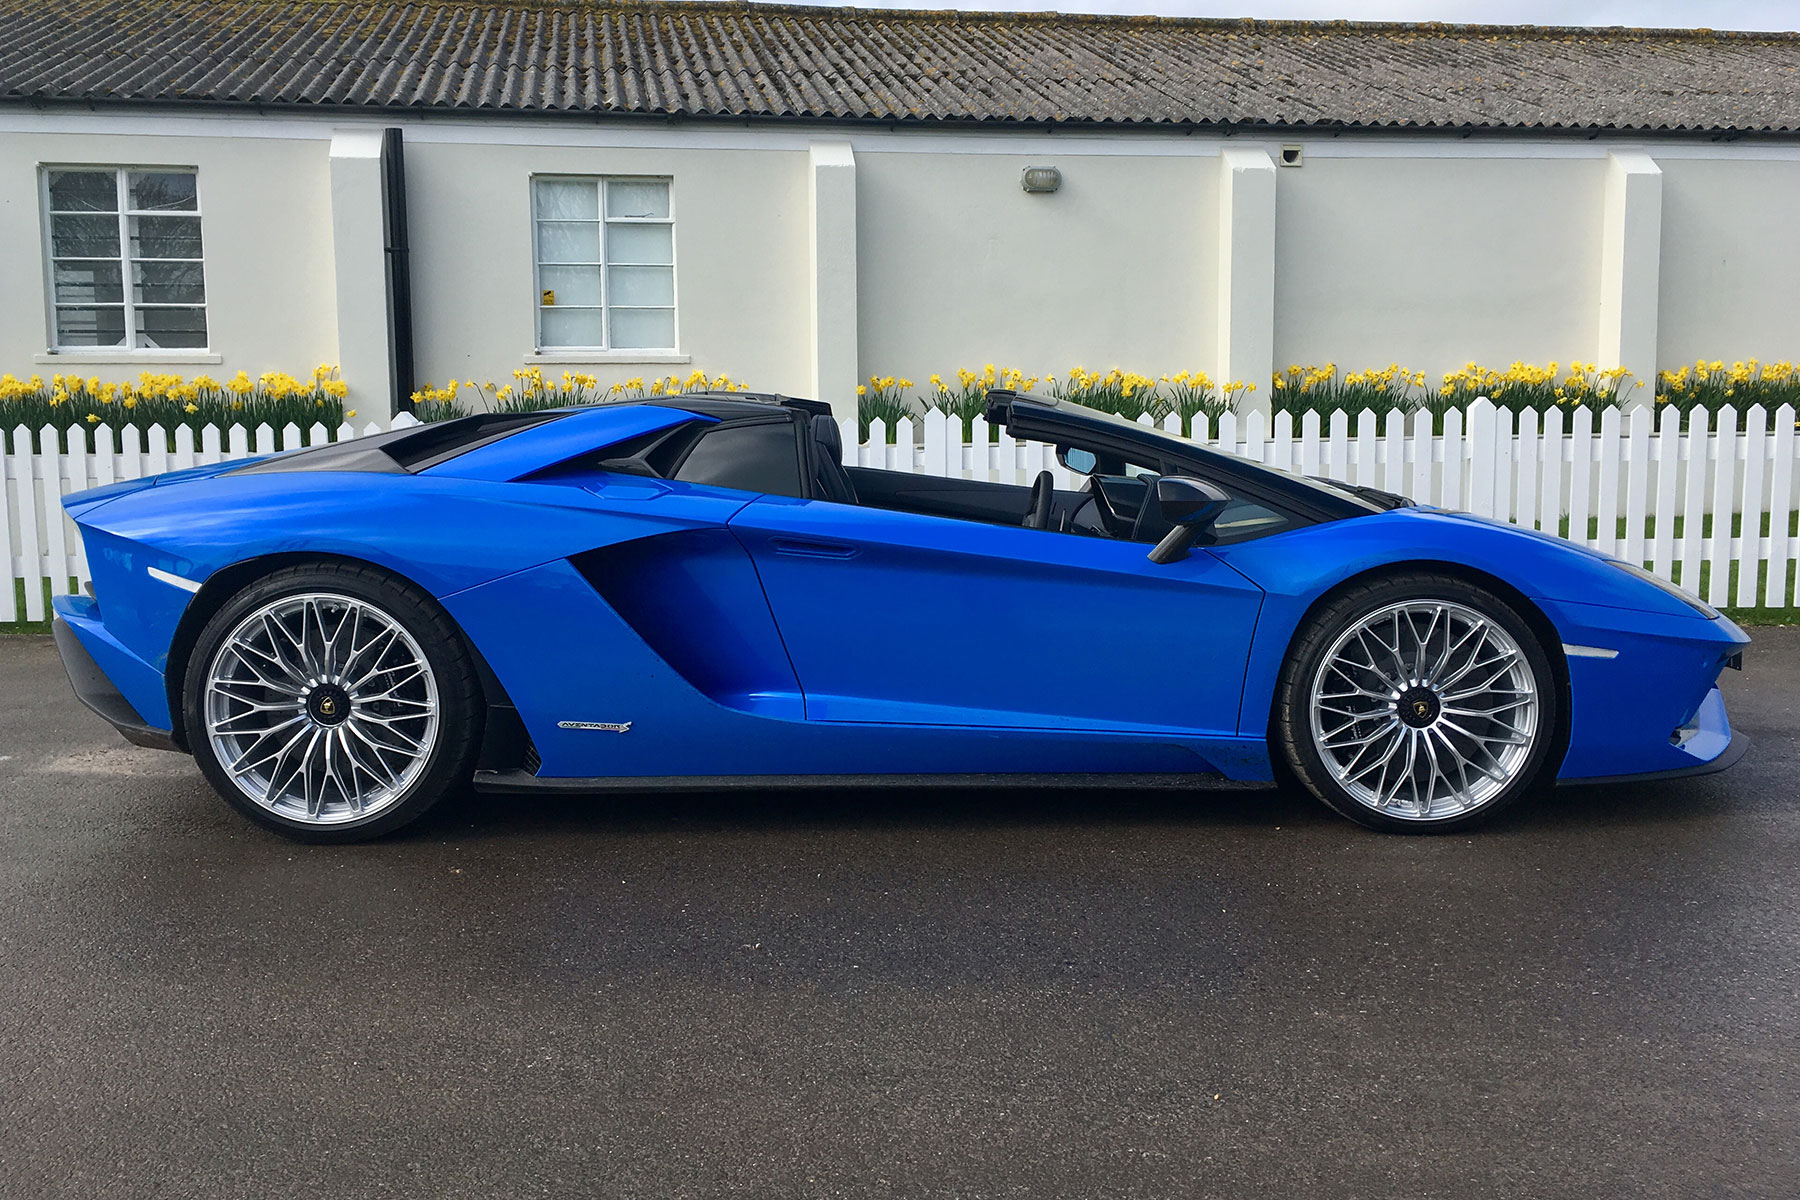 Supercar mega-test: which one is best?